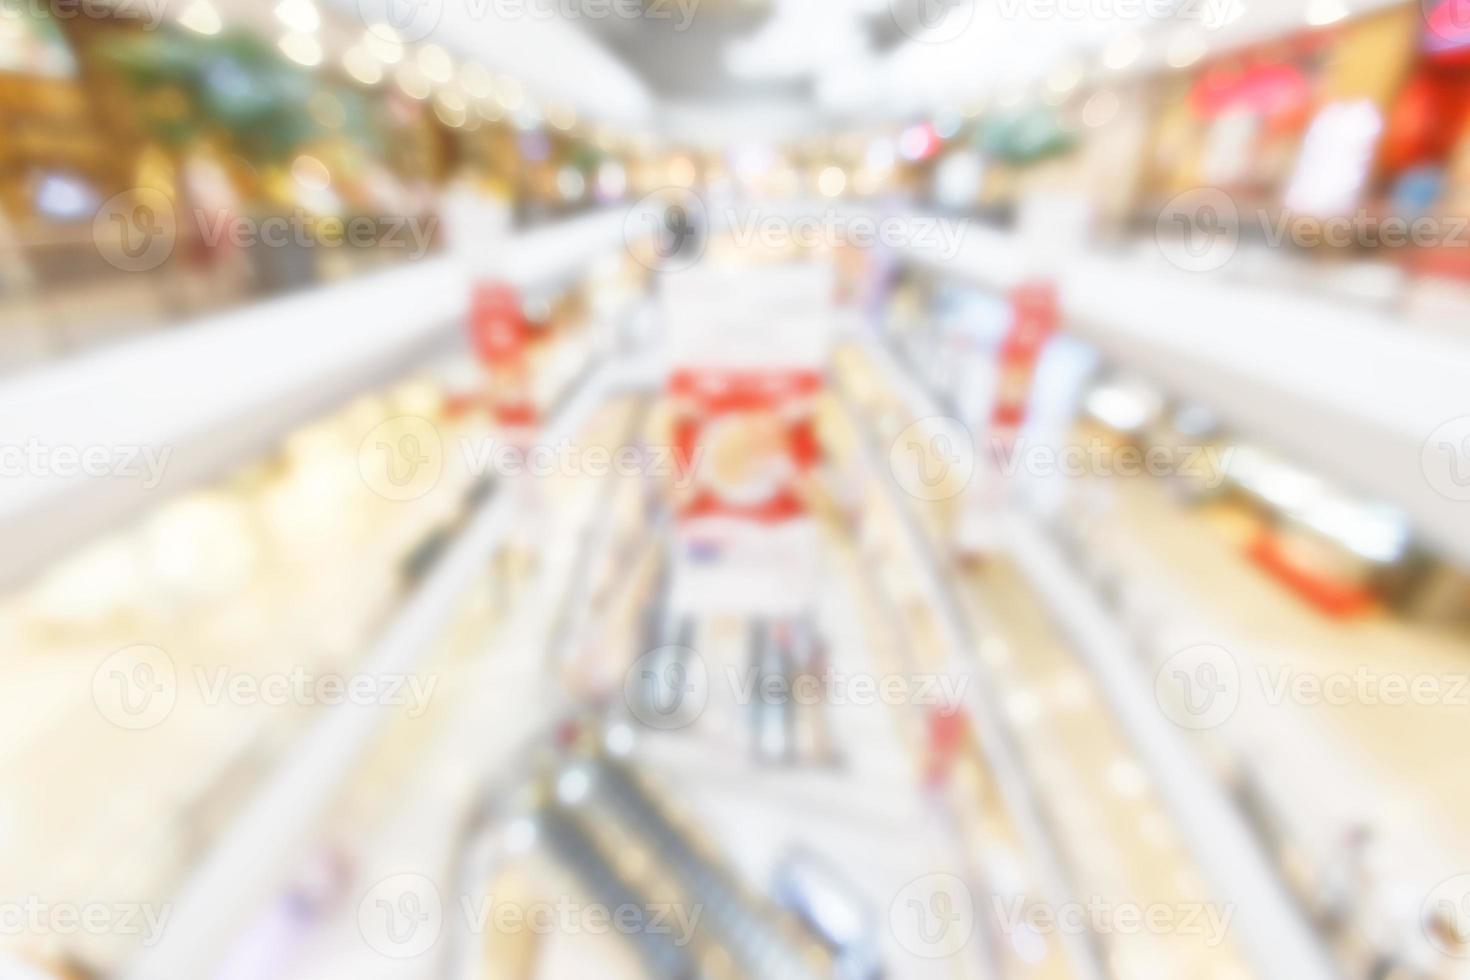 Abstract blurred manny People shopping in department store. Busi photo